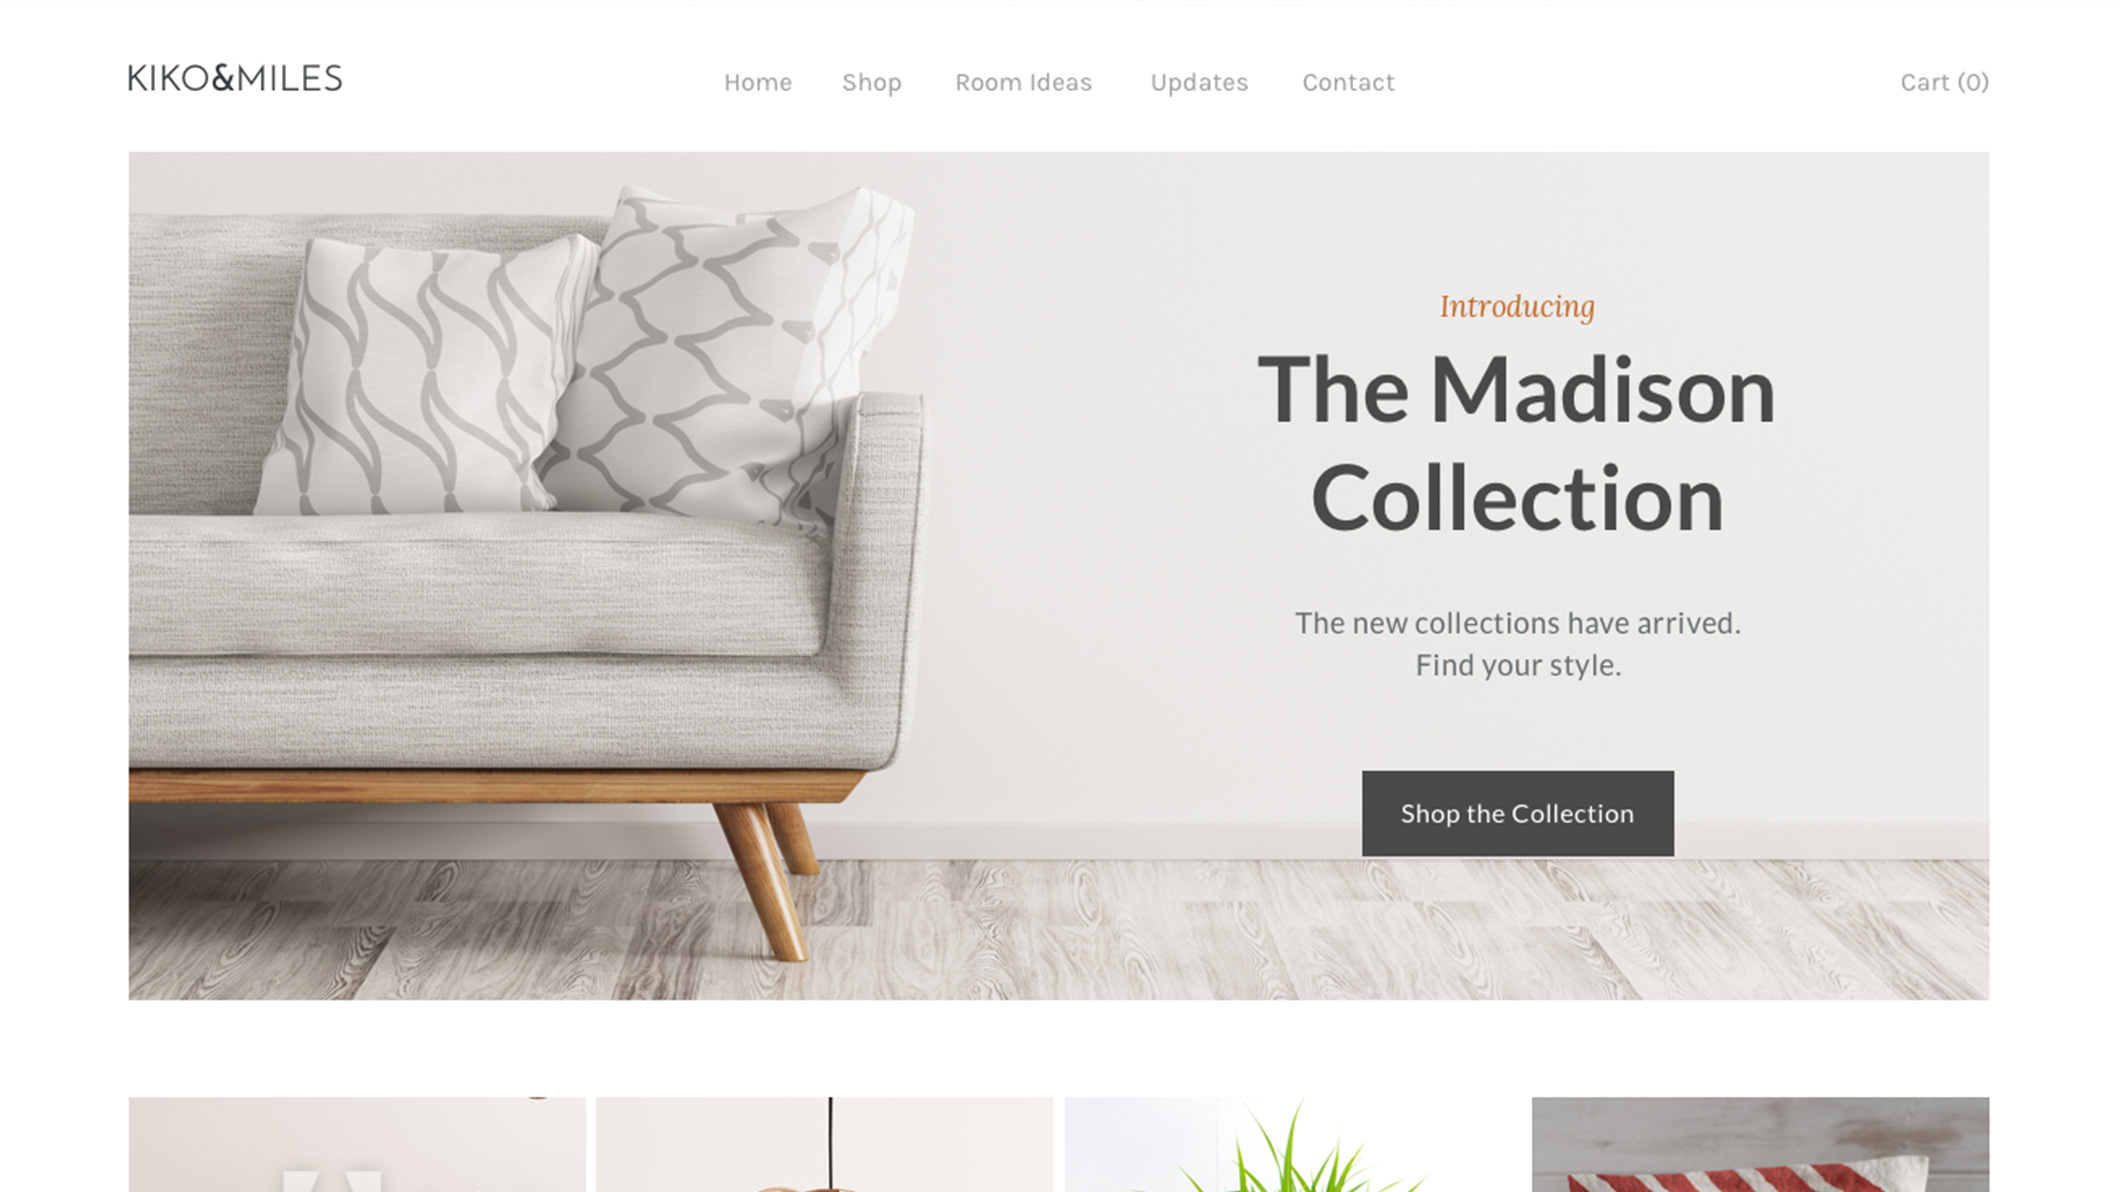 The new weebly ecommerce has arrived more than